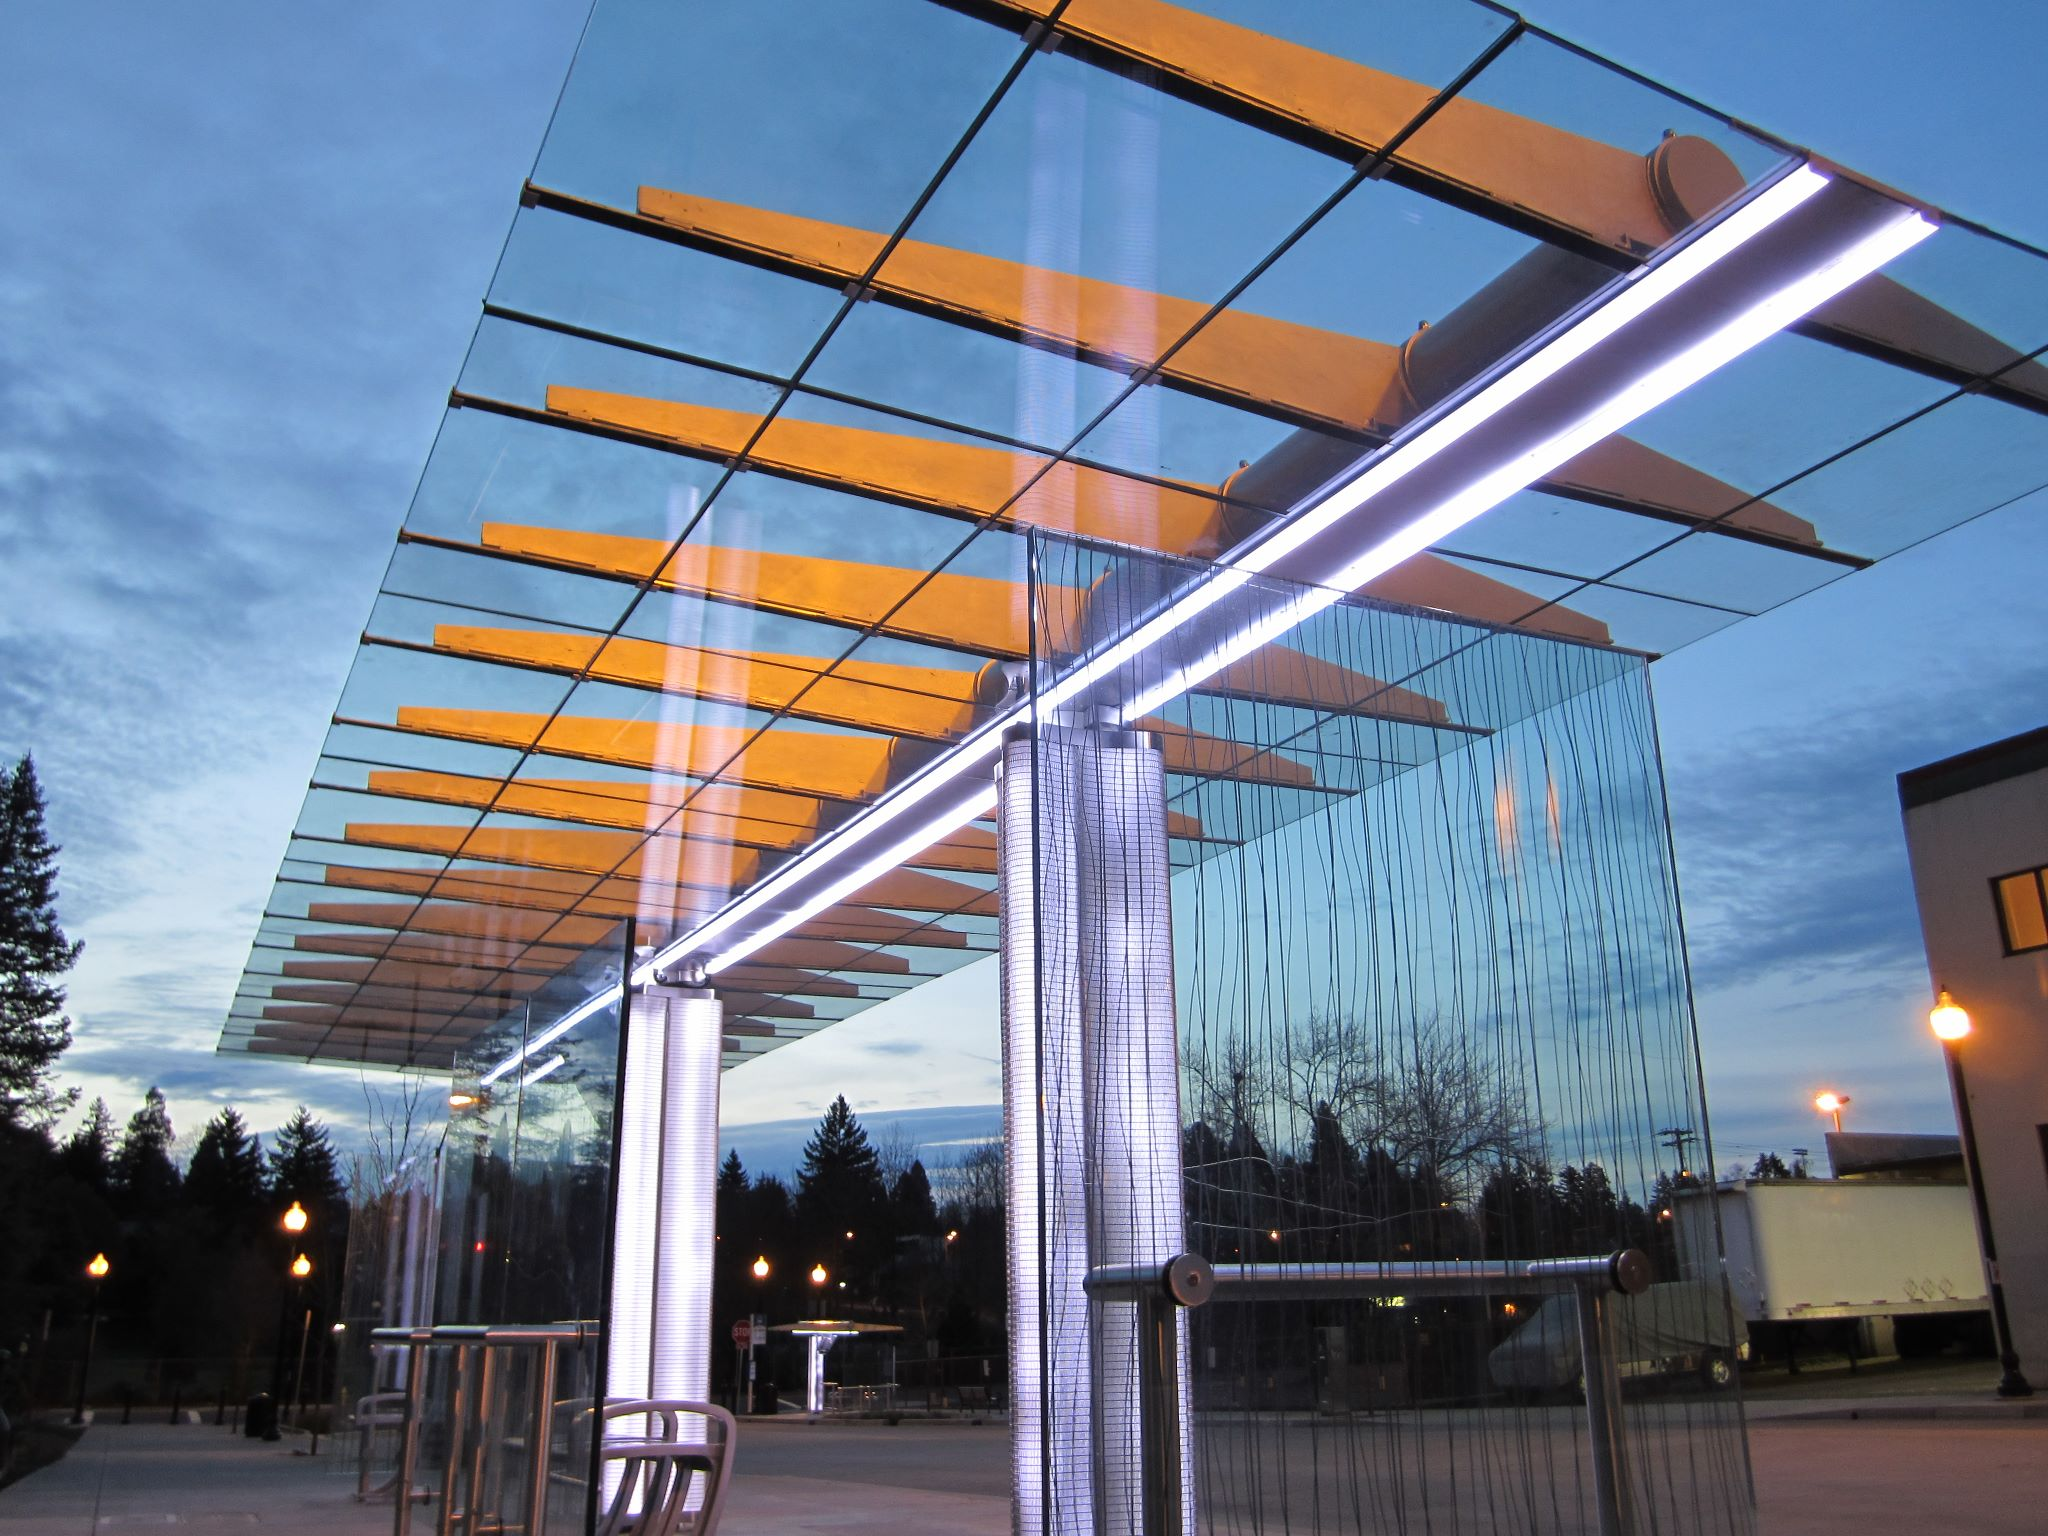 Trimet Led Bus Stop Shelter By Brasco International Archello